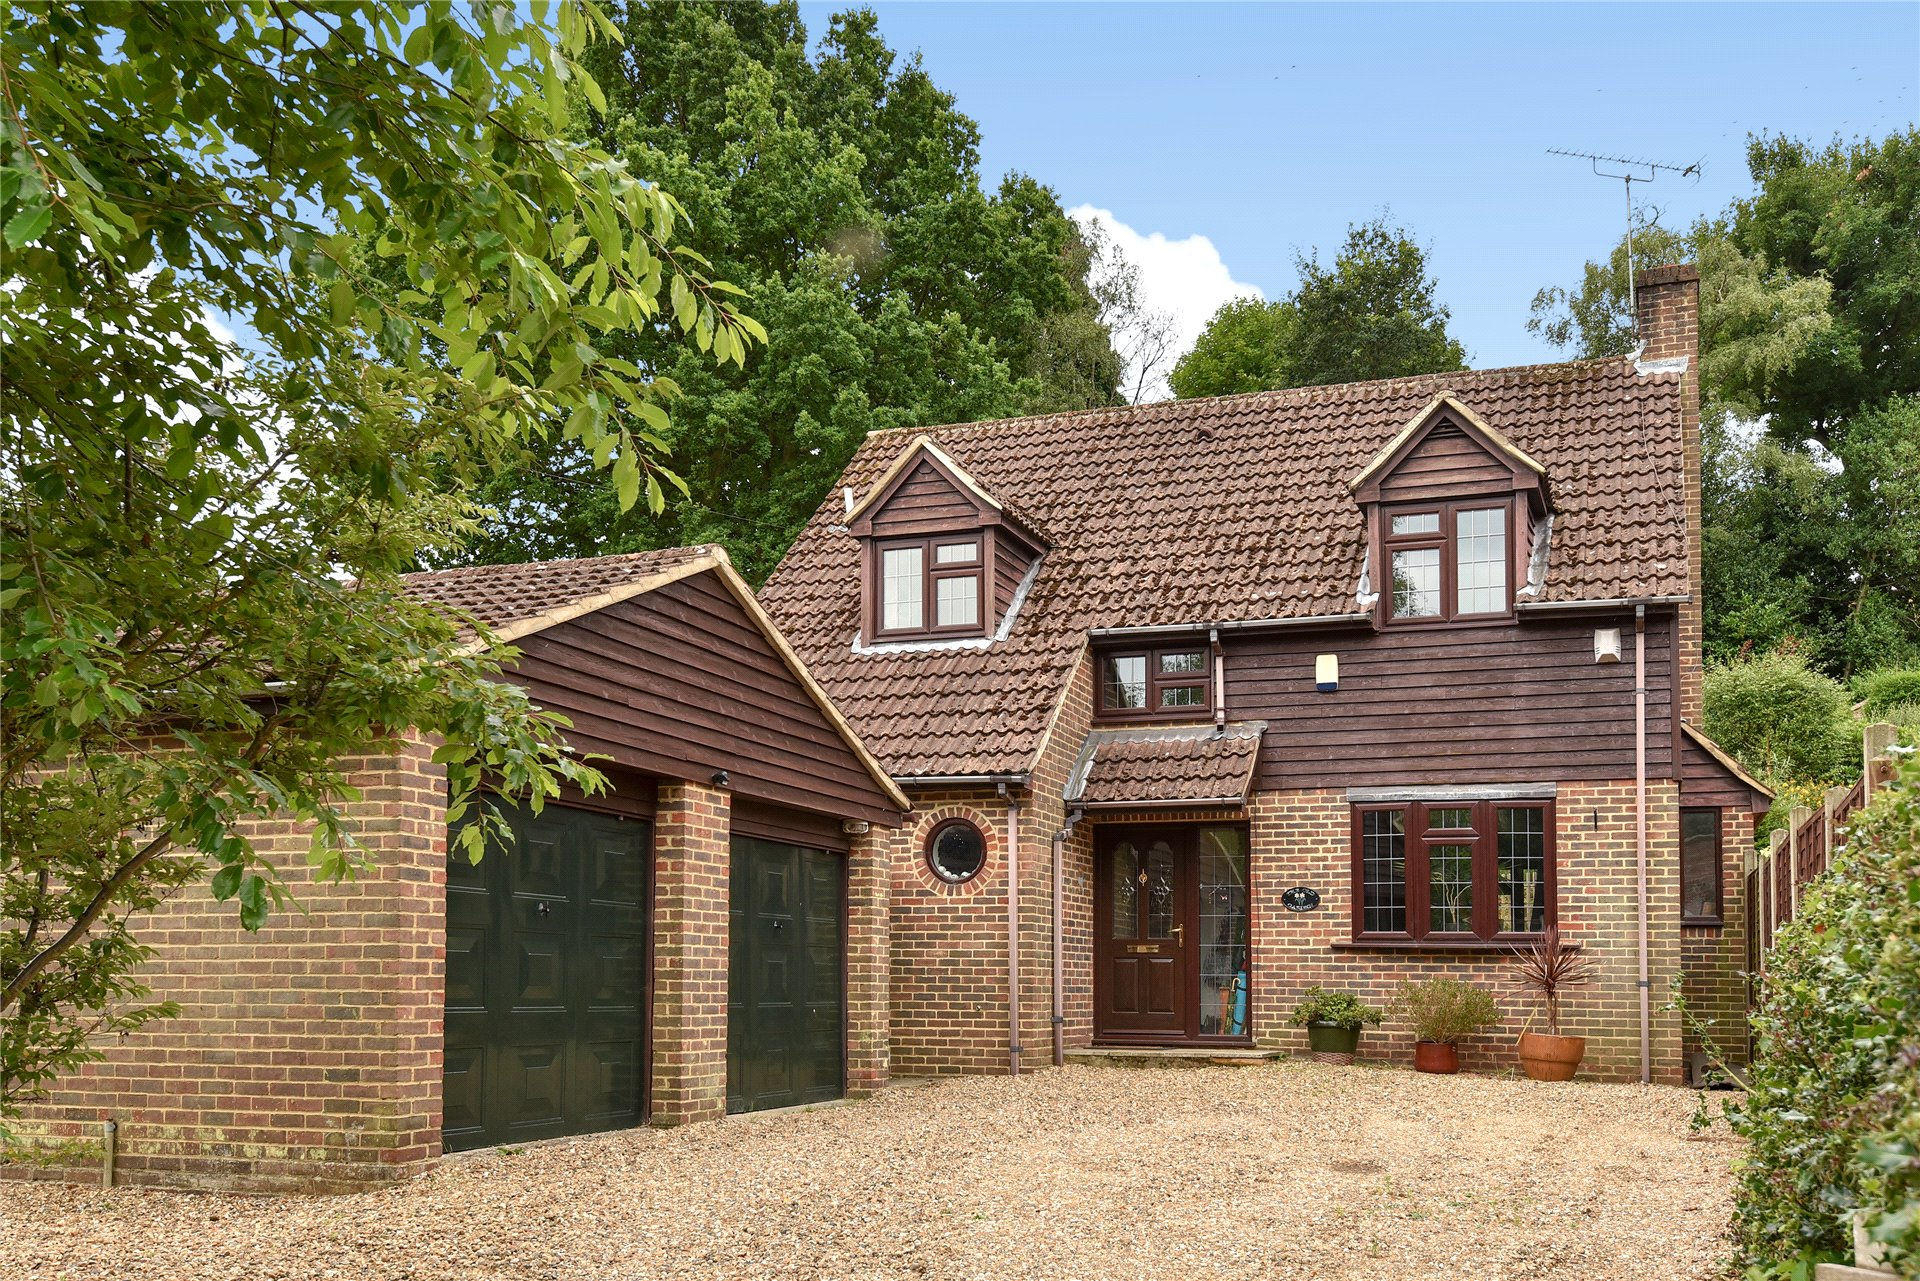 4 Bedrooms Detached House for sale in Longdown Road, Sandhurst, Berkshire, GU47